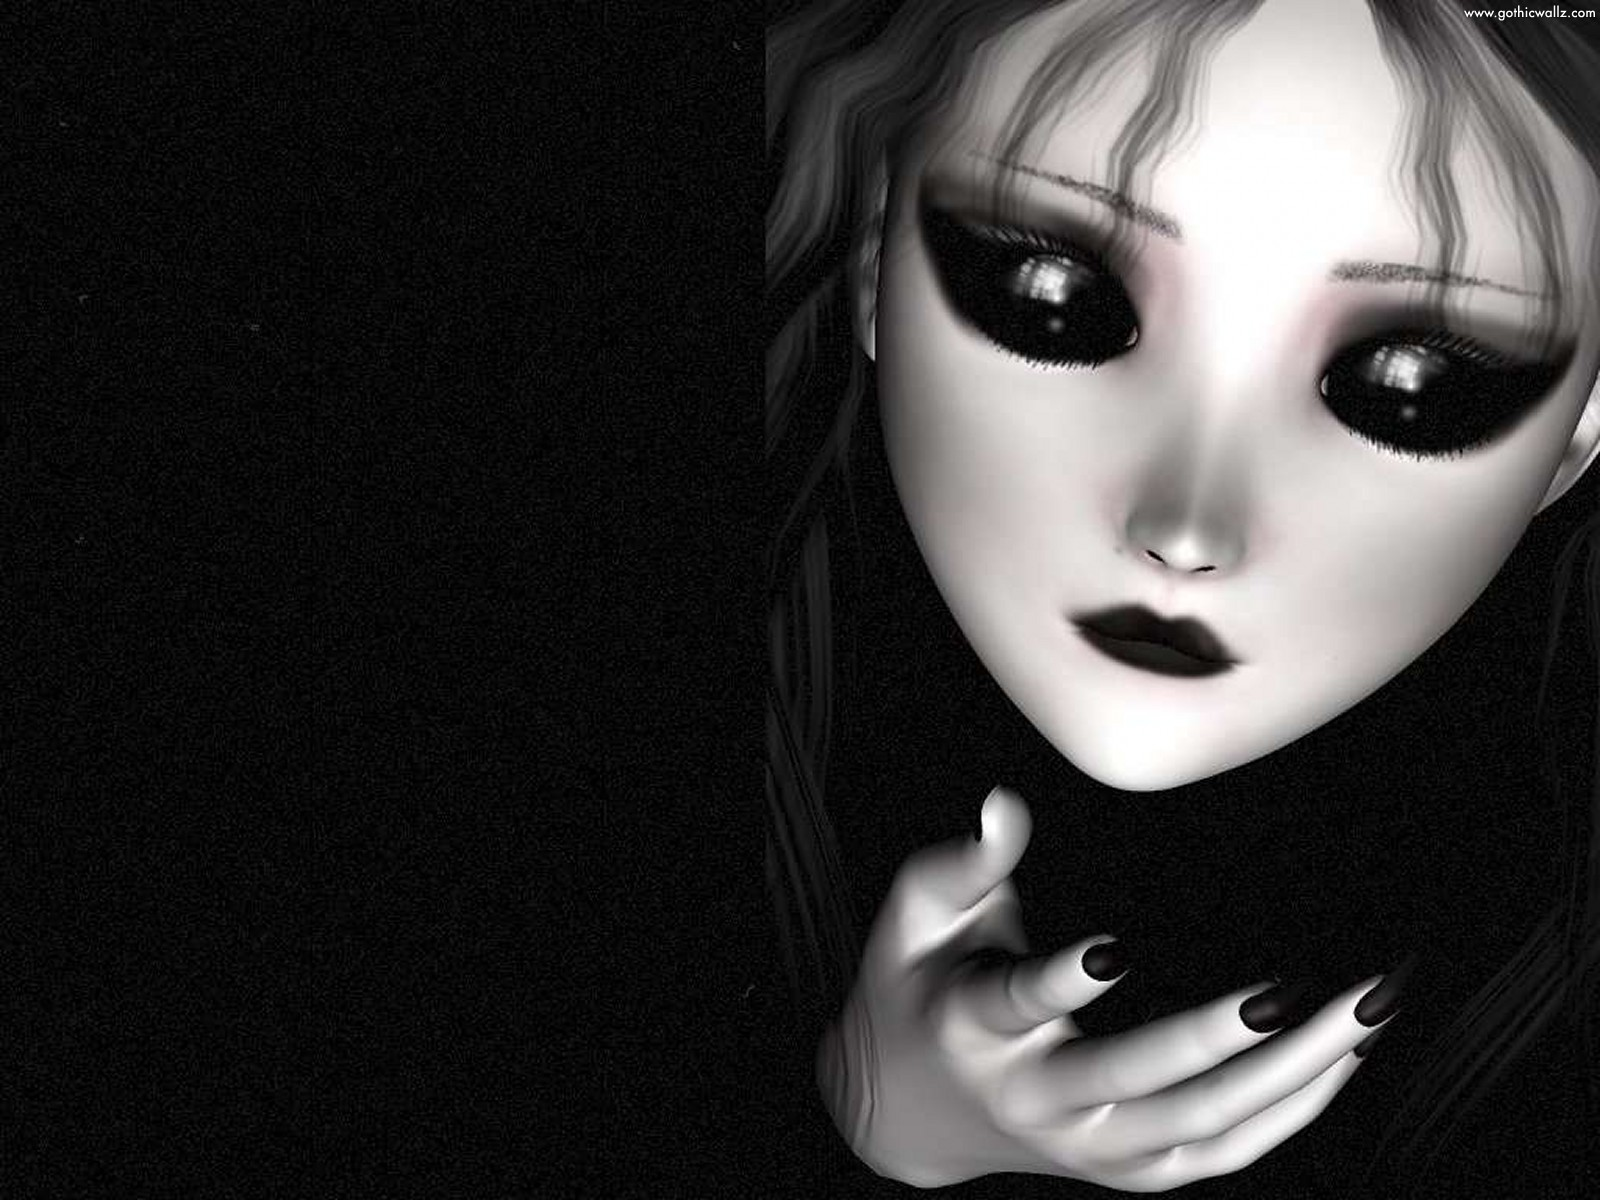 Dark Doll Girl | Dark Gothic Wallpaper Download